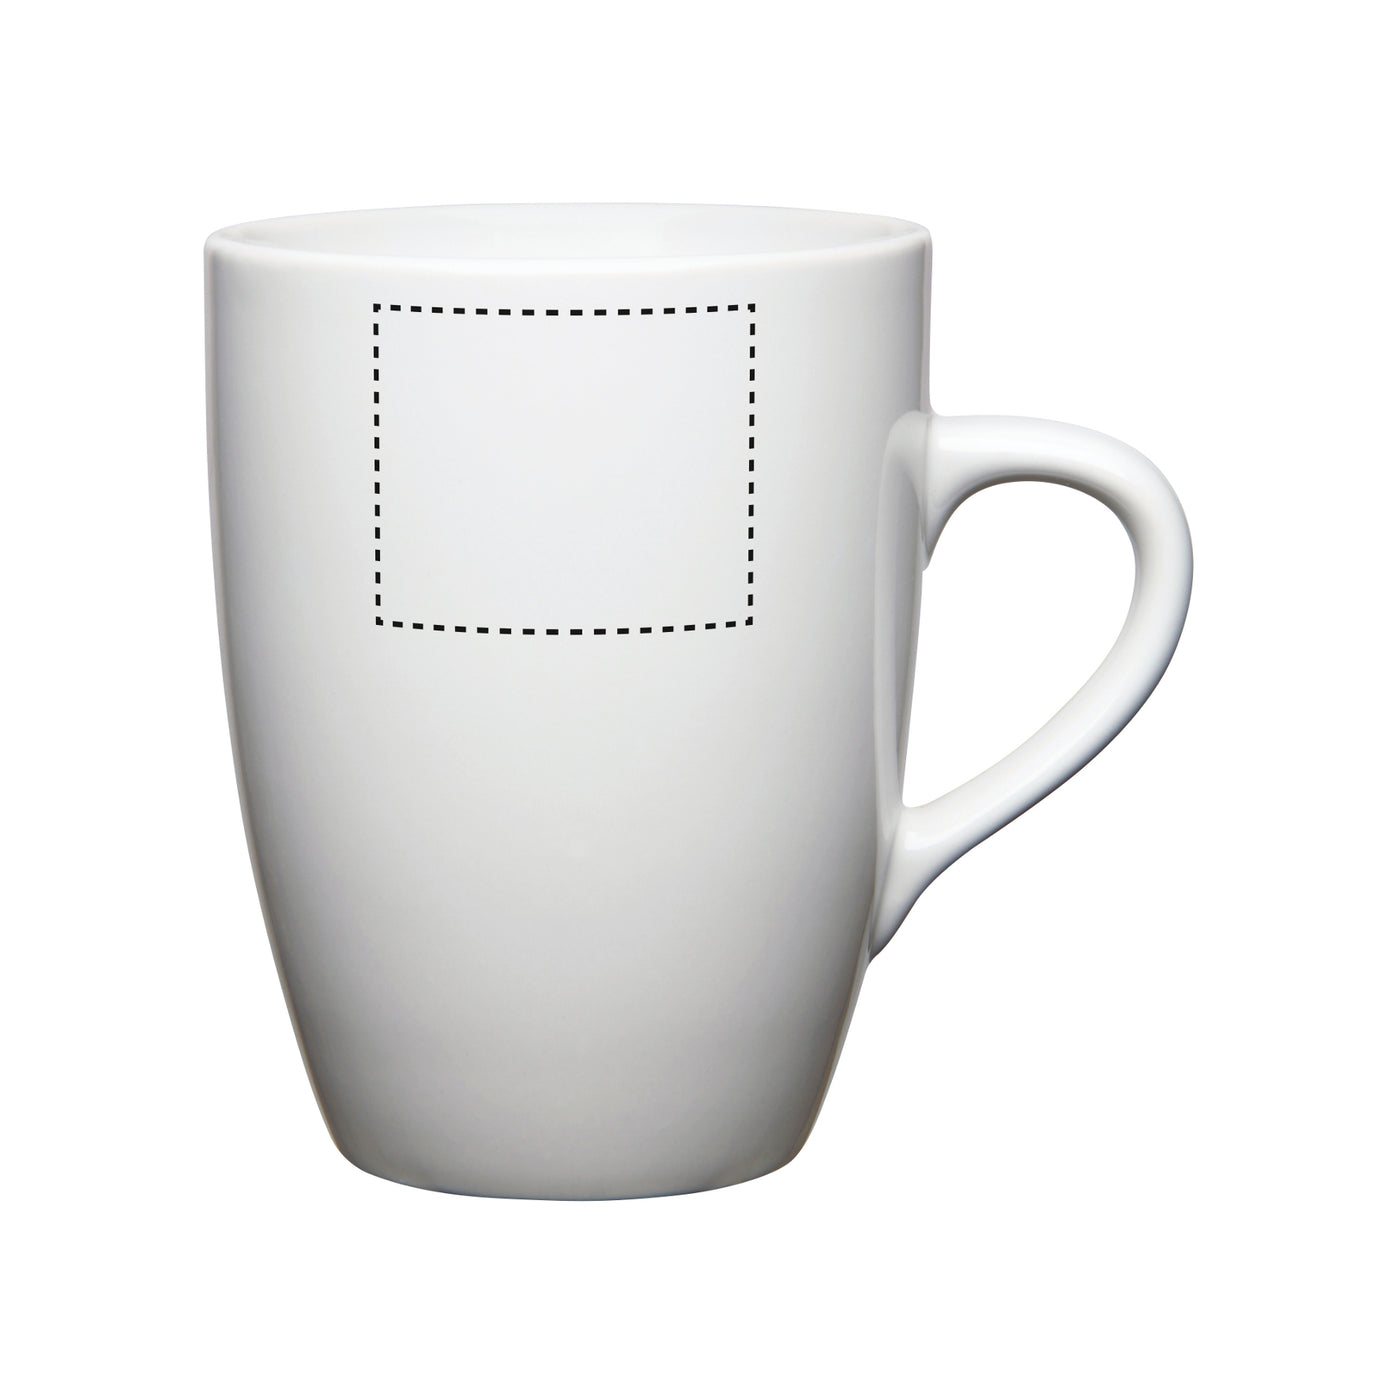 Budget Buster Marrow Mug - Branded Items Group